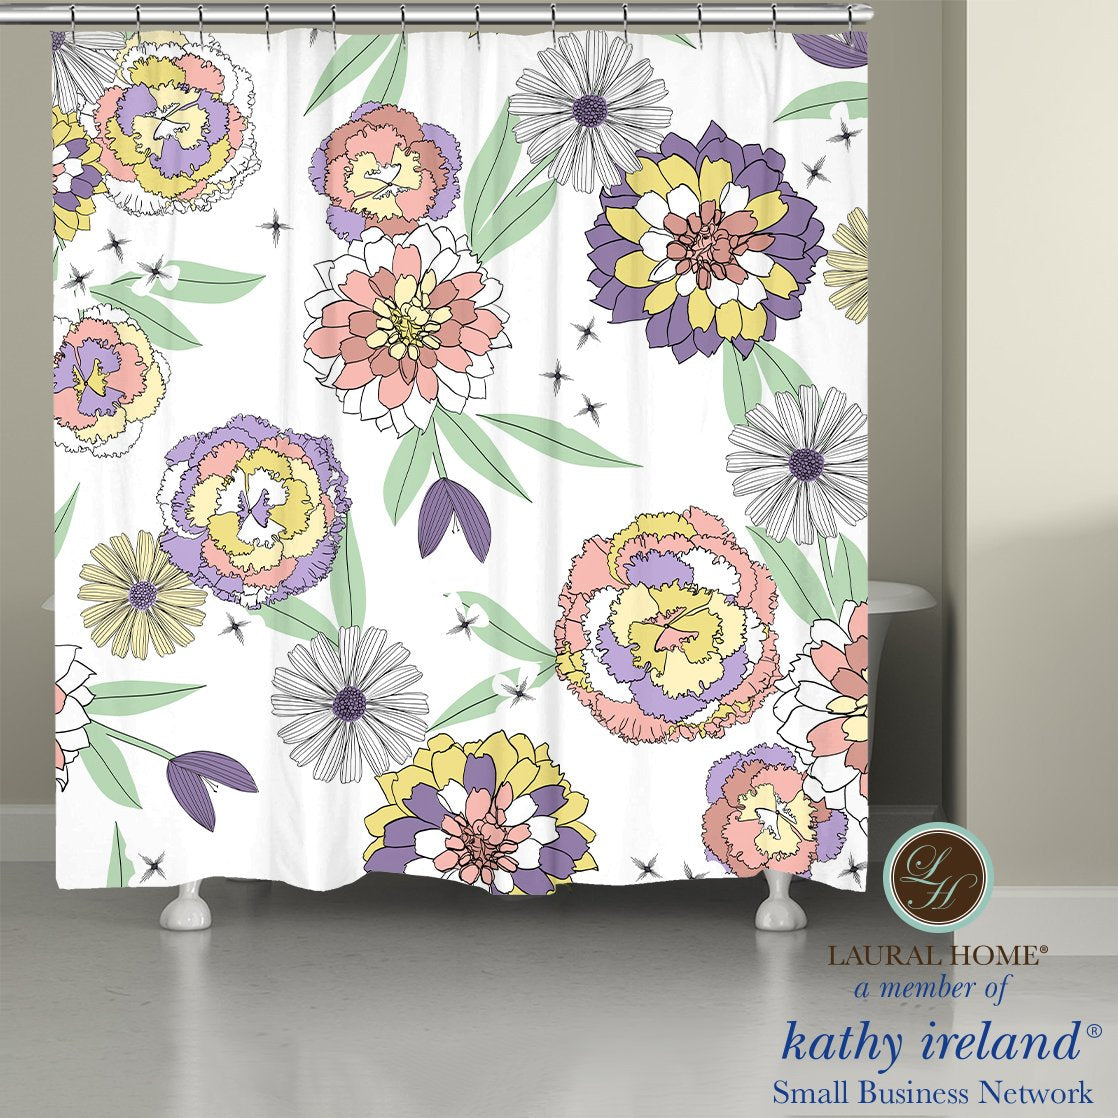 Laural Home kathy ireland® Small Business Network Member Retro Floral Bloom Shower Curtain